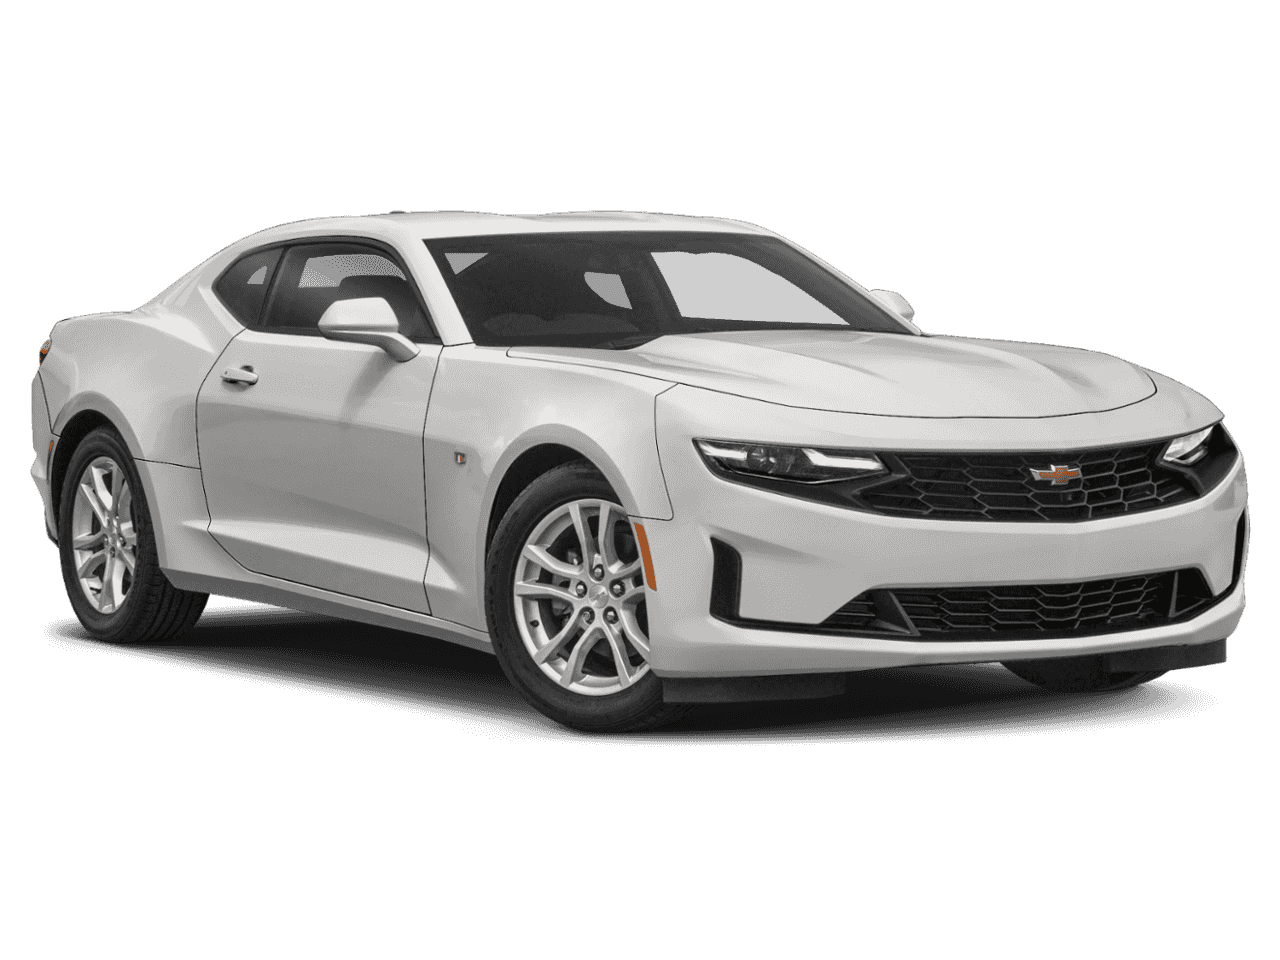 New 2021 Chevrolet Camaro 1LS